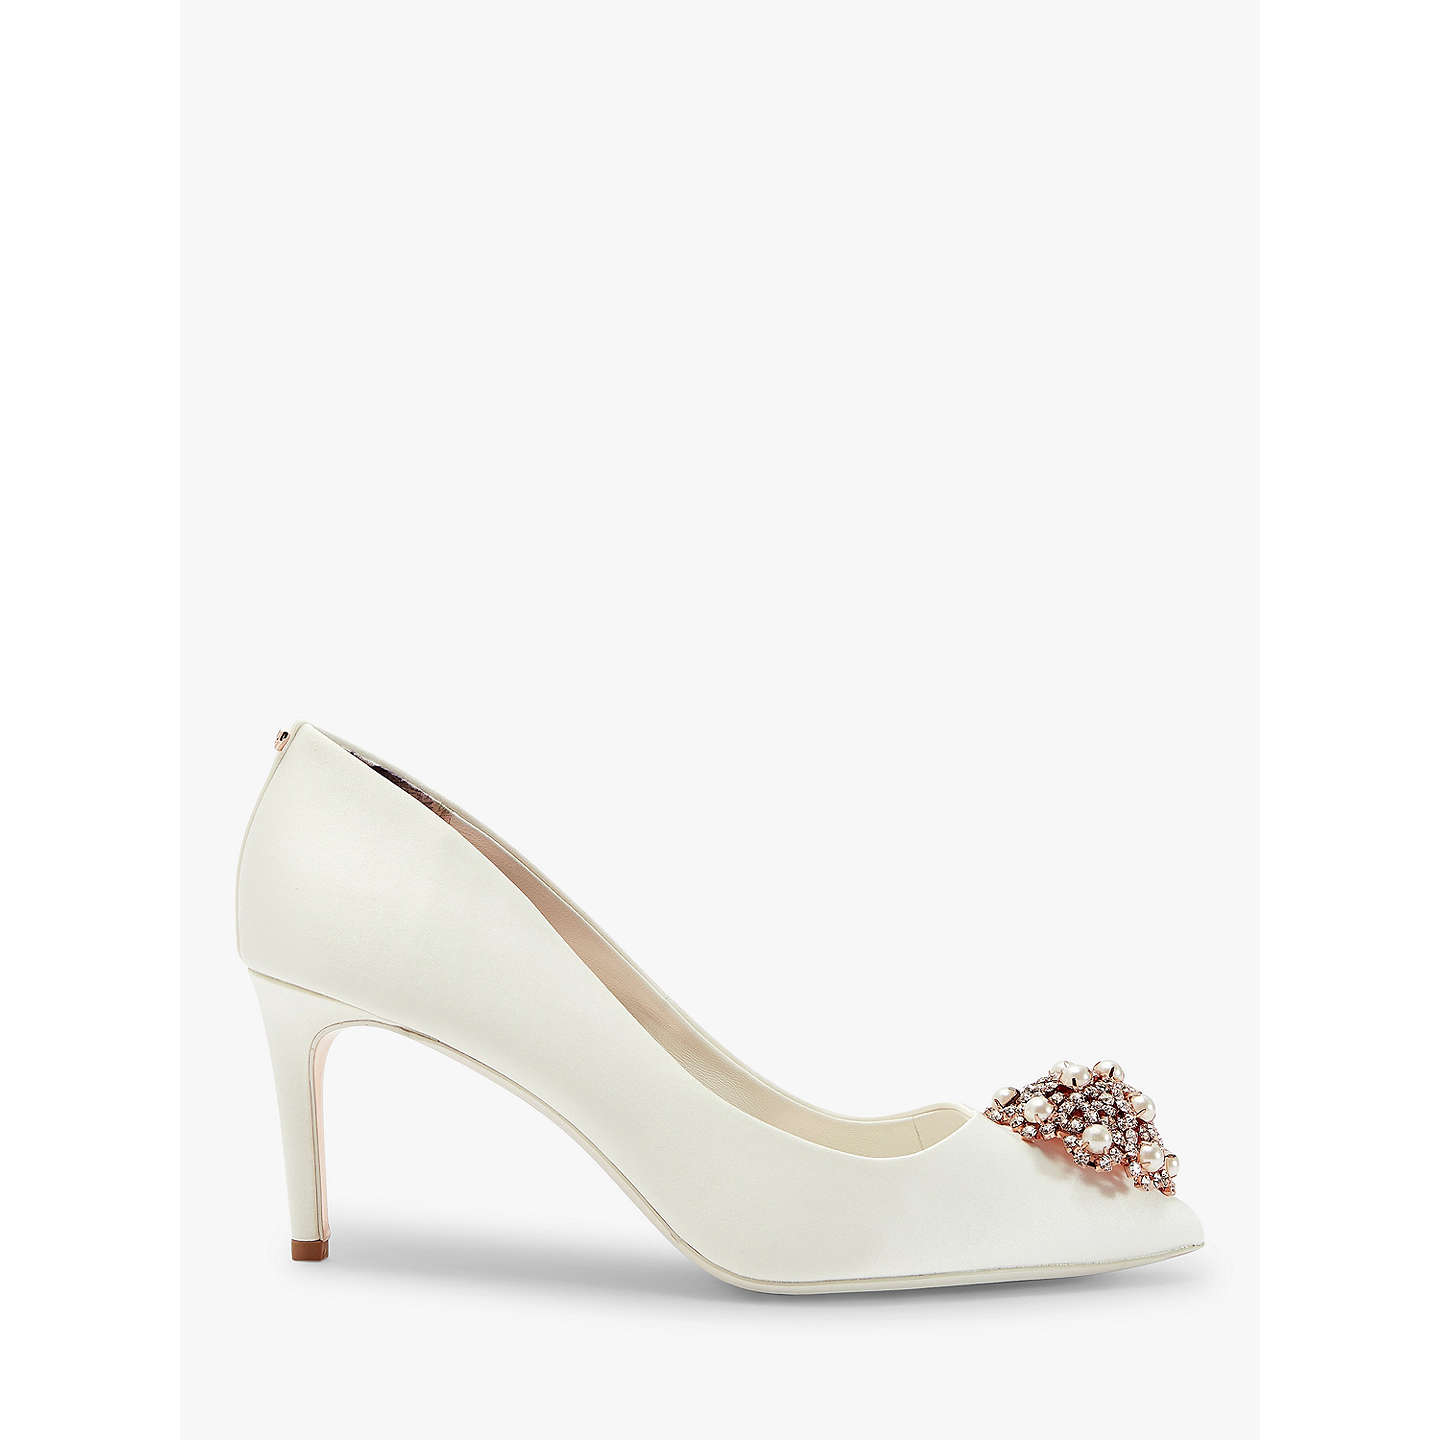 ted baker shoes female for kickboxing bag workouts online